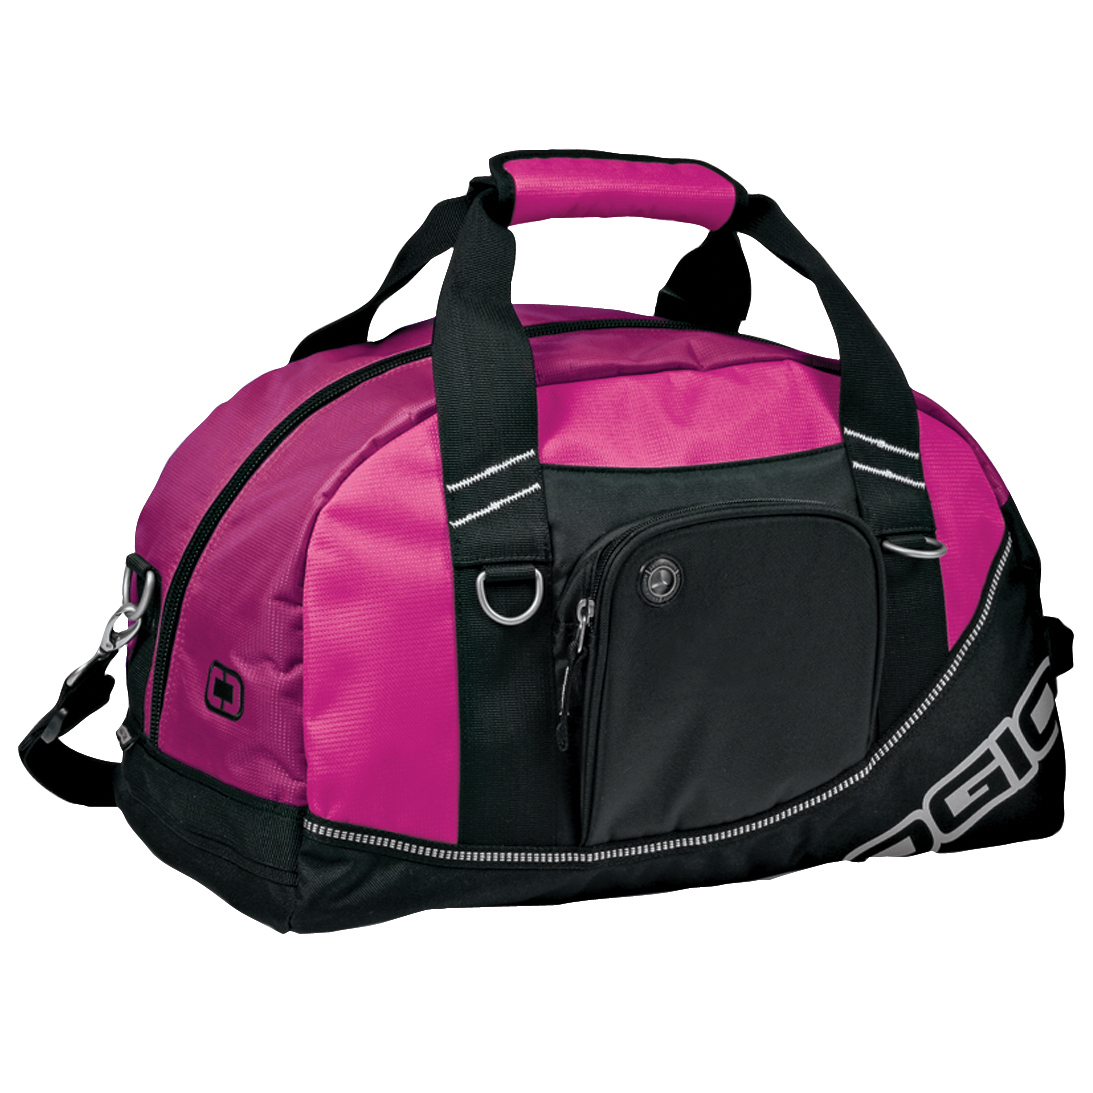 Ogio Half Dome Sports/Gym Duffle Bag (29.5 Litres) (Pack of 2) (One Size) (Hot Pink/Black)